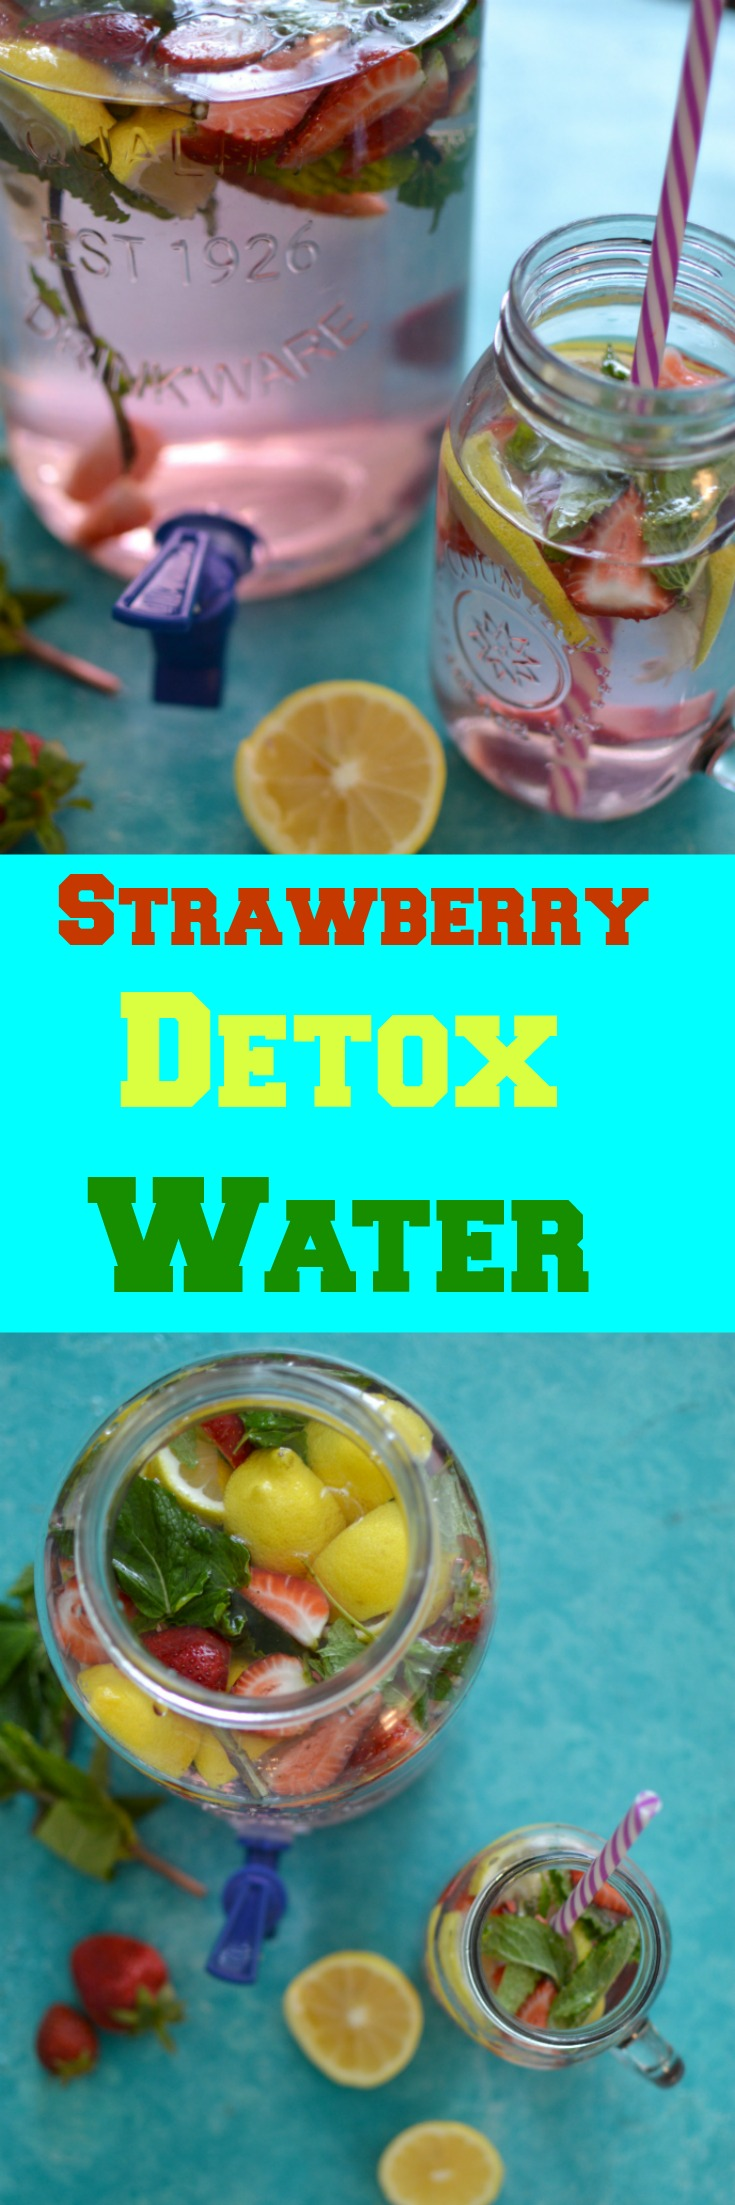 You will absolutely love this Skinny Strawberry Mint Detox water. This Drink actually will Control Your Blood Sugar Levels But It Also is filled with Loads Of Vitamins And Antioxidants. This drink will help flush toxins from your system right away. You'll gain more energy while not compromising on your health!